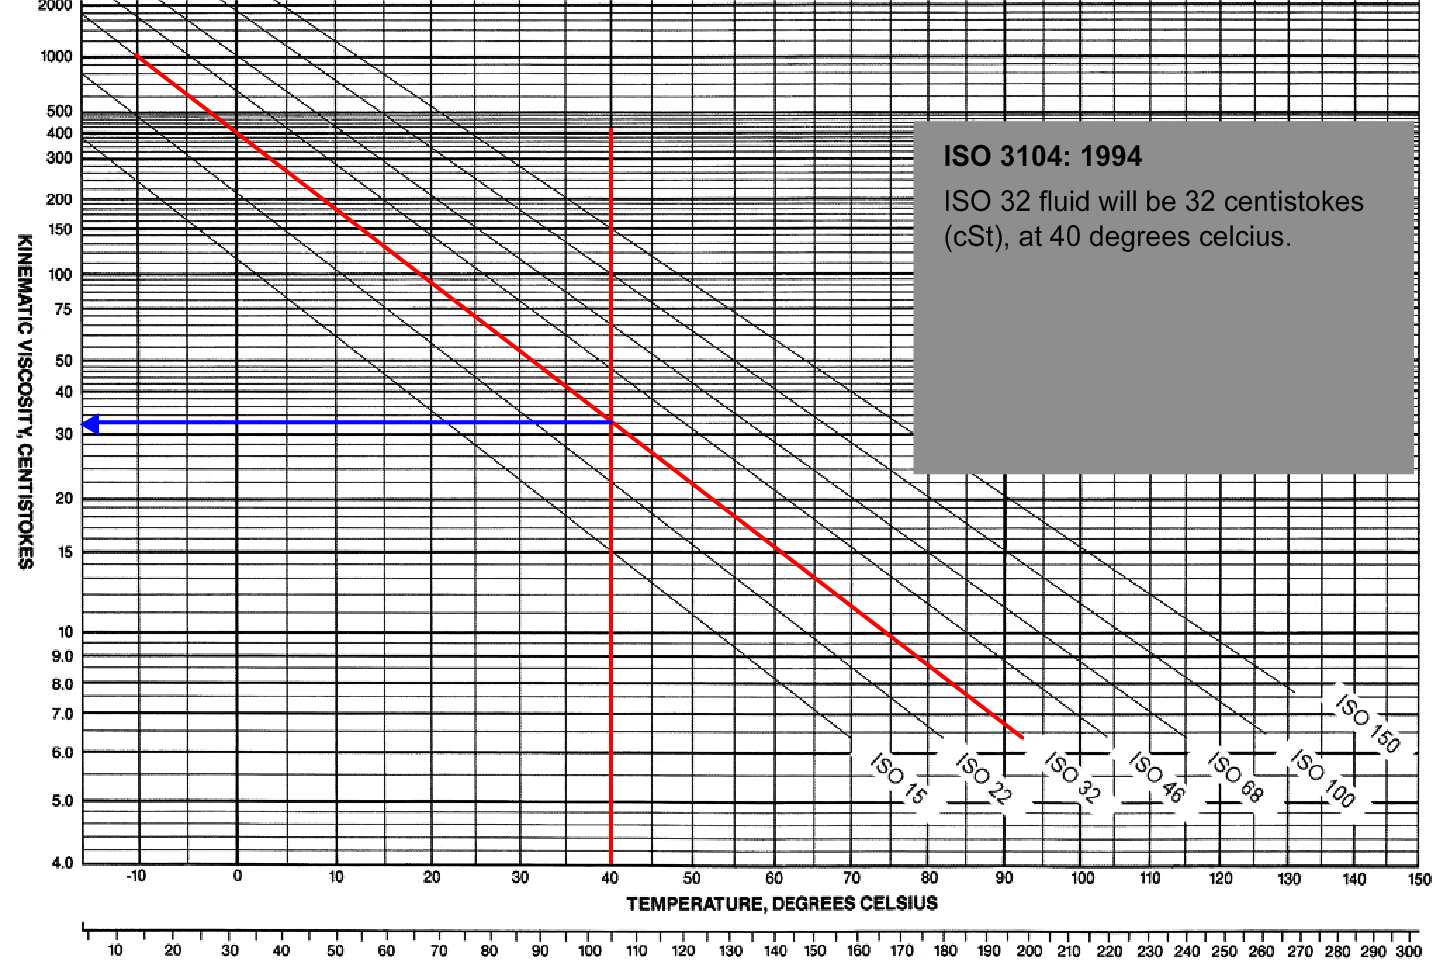 Hydraulic Filters - Pressure Drop Chart Calculation - ISO 3104 40 degrees